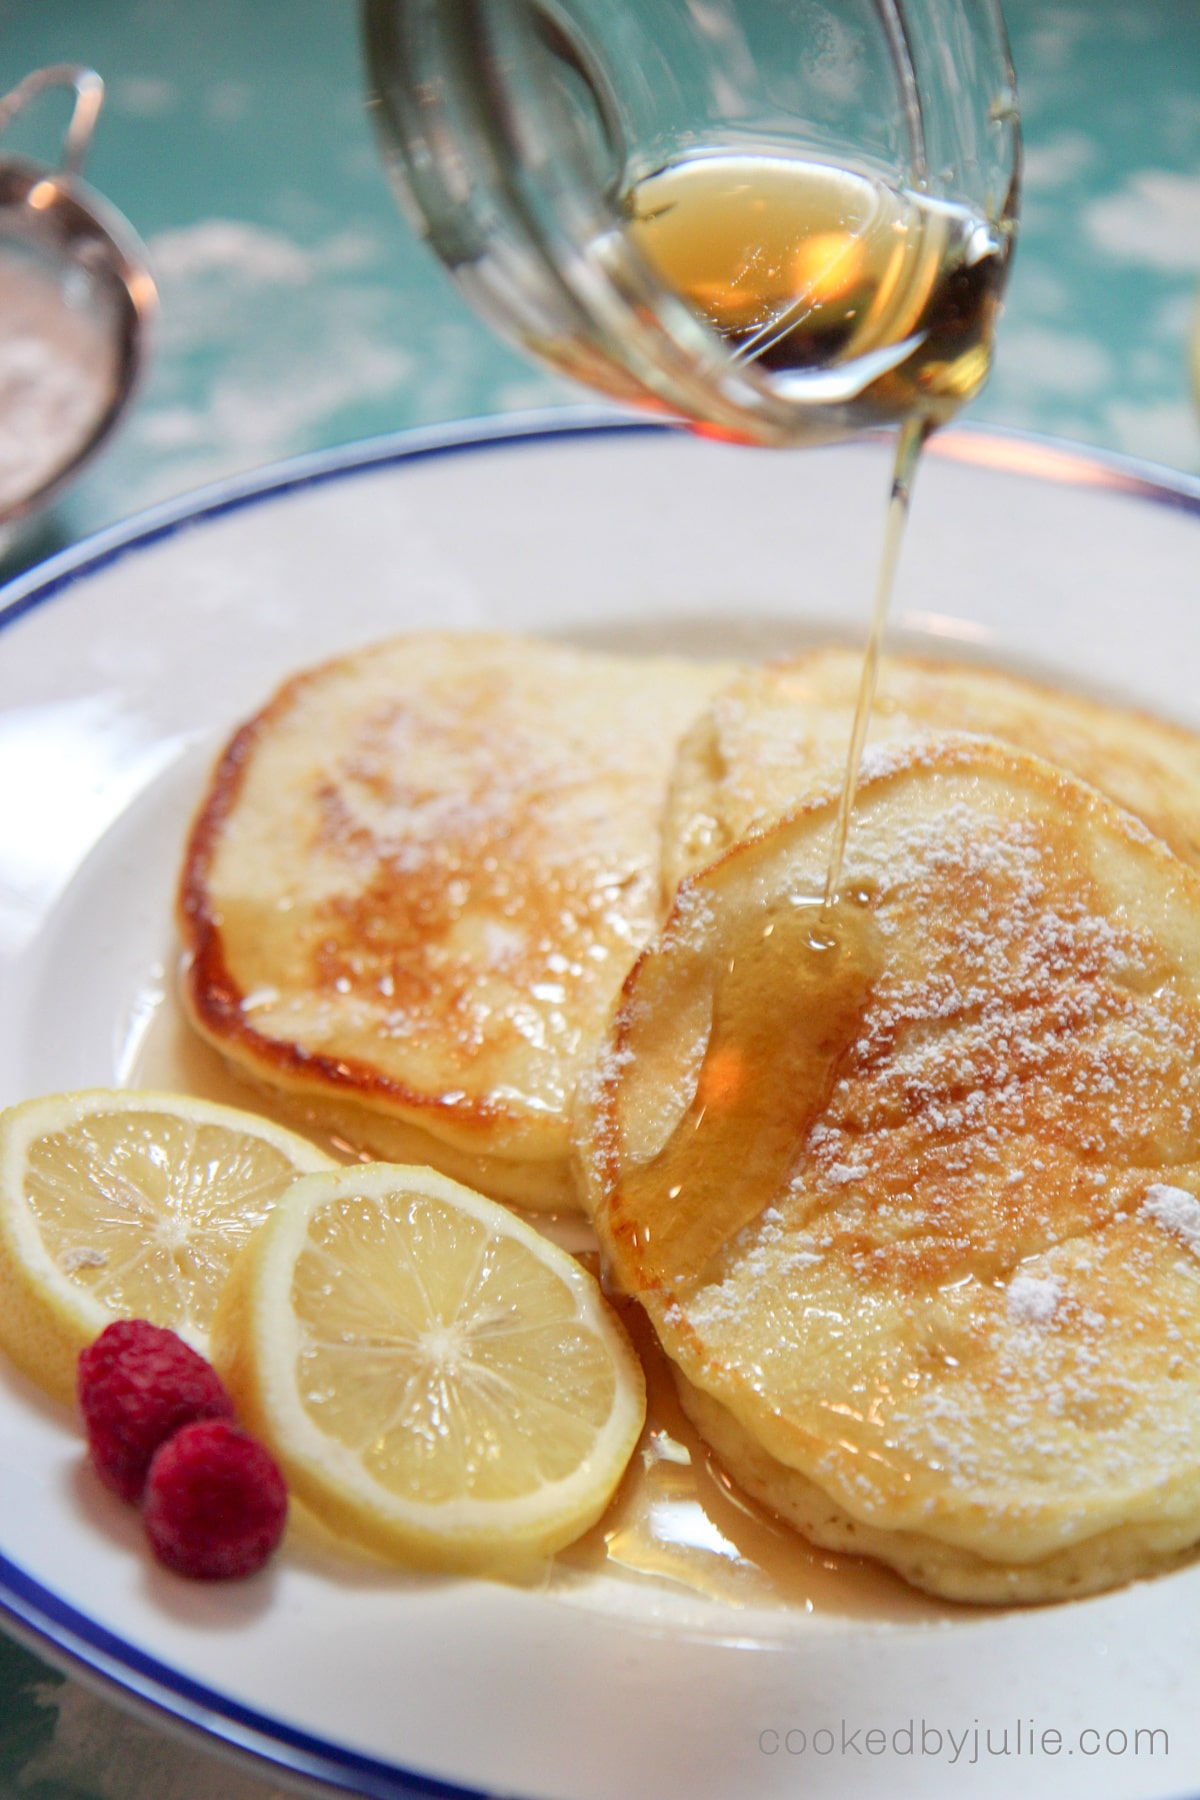 three lemon ricotta pancakes on a white and blue plate with syrup drizzled over it, two lemon slices, and two raspberries on the side.